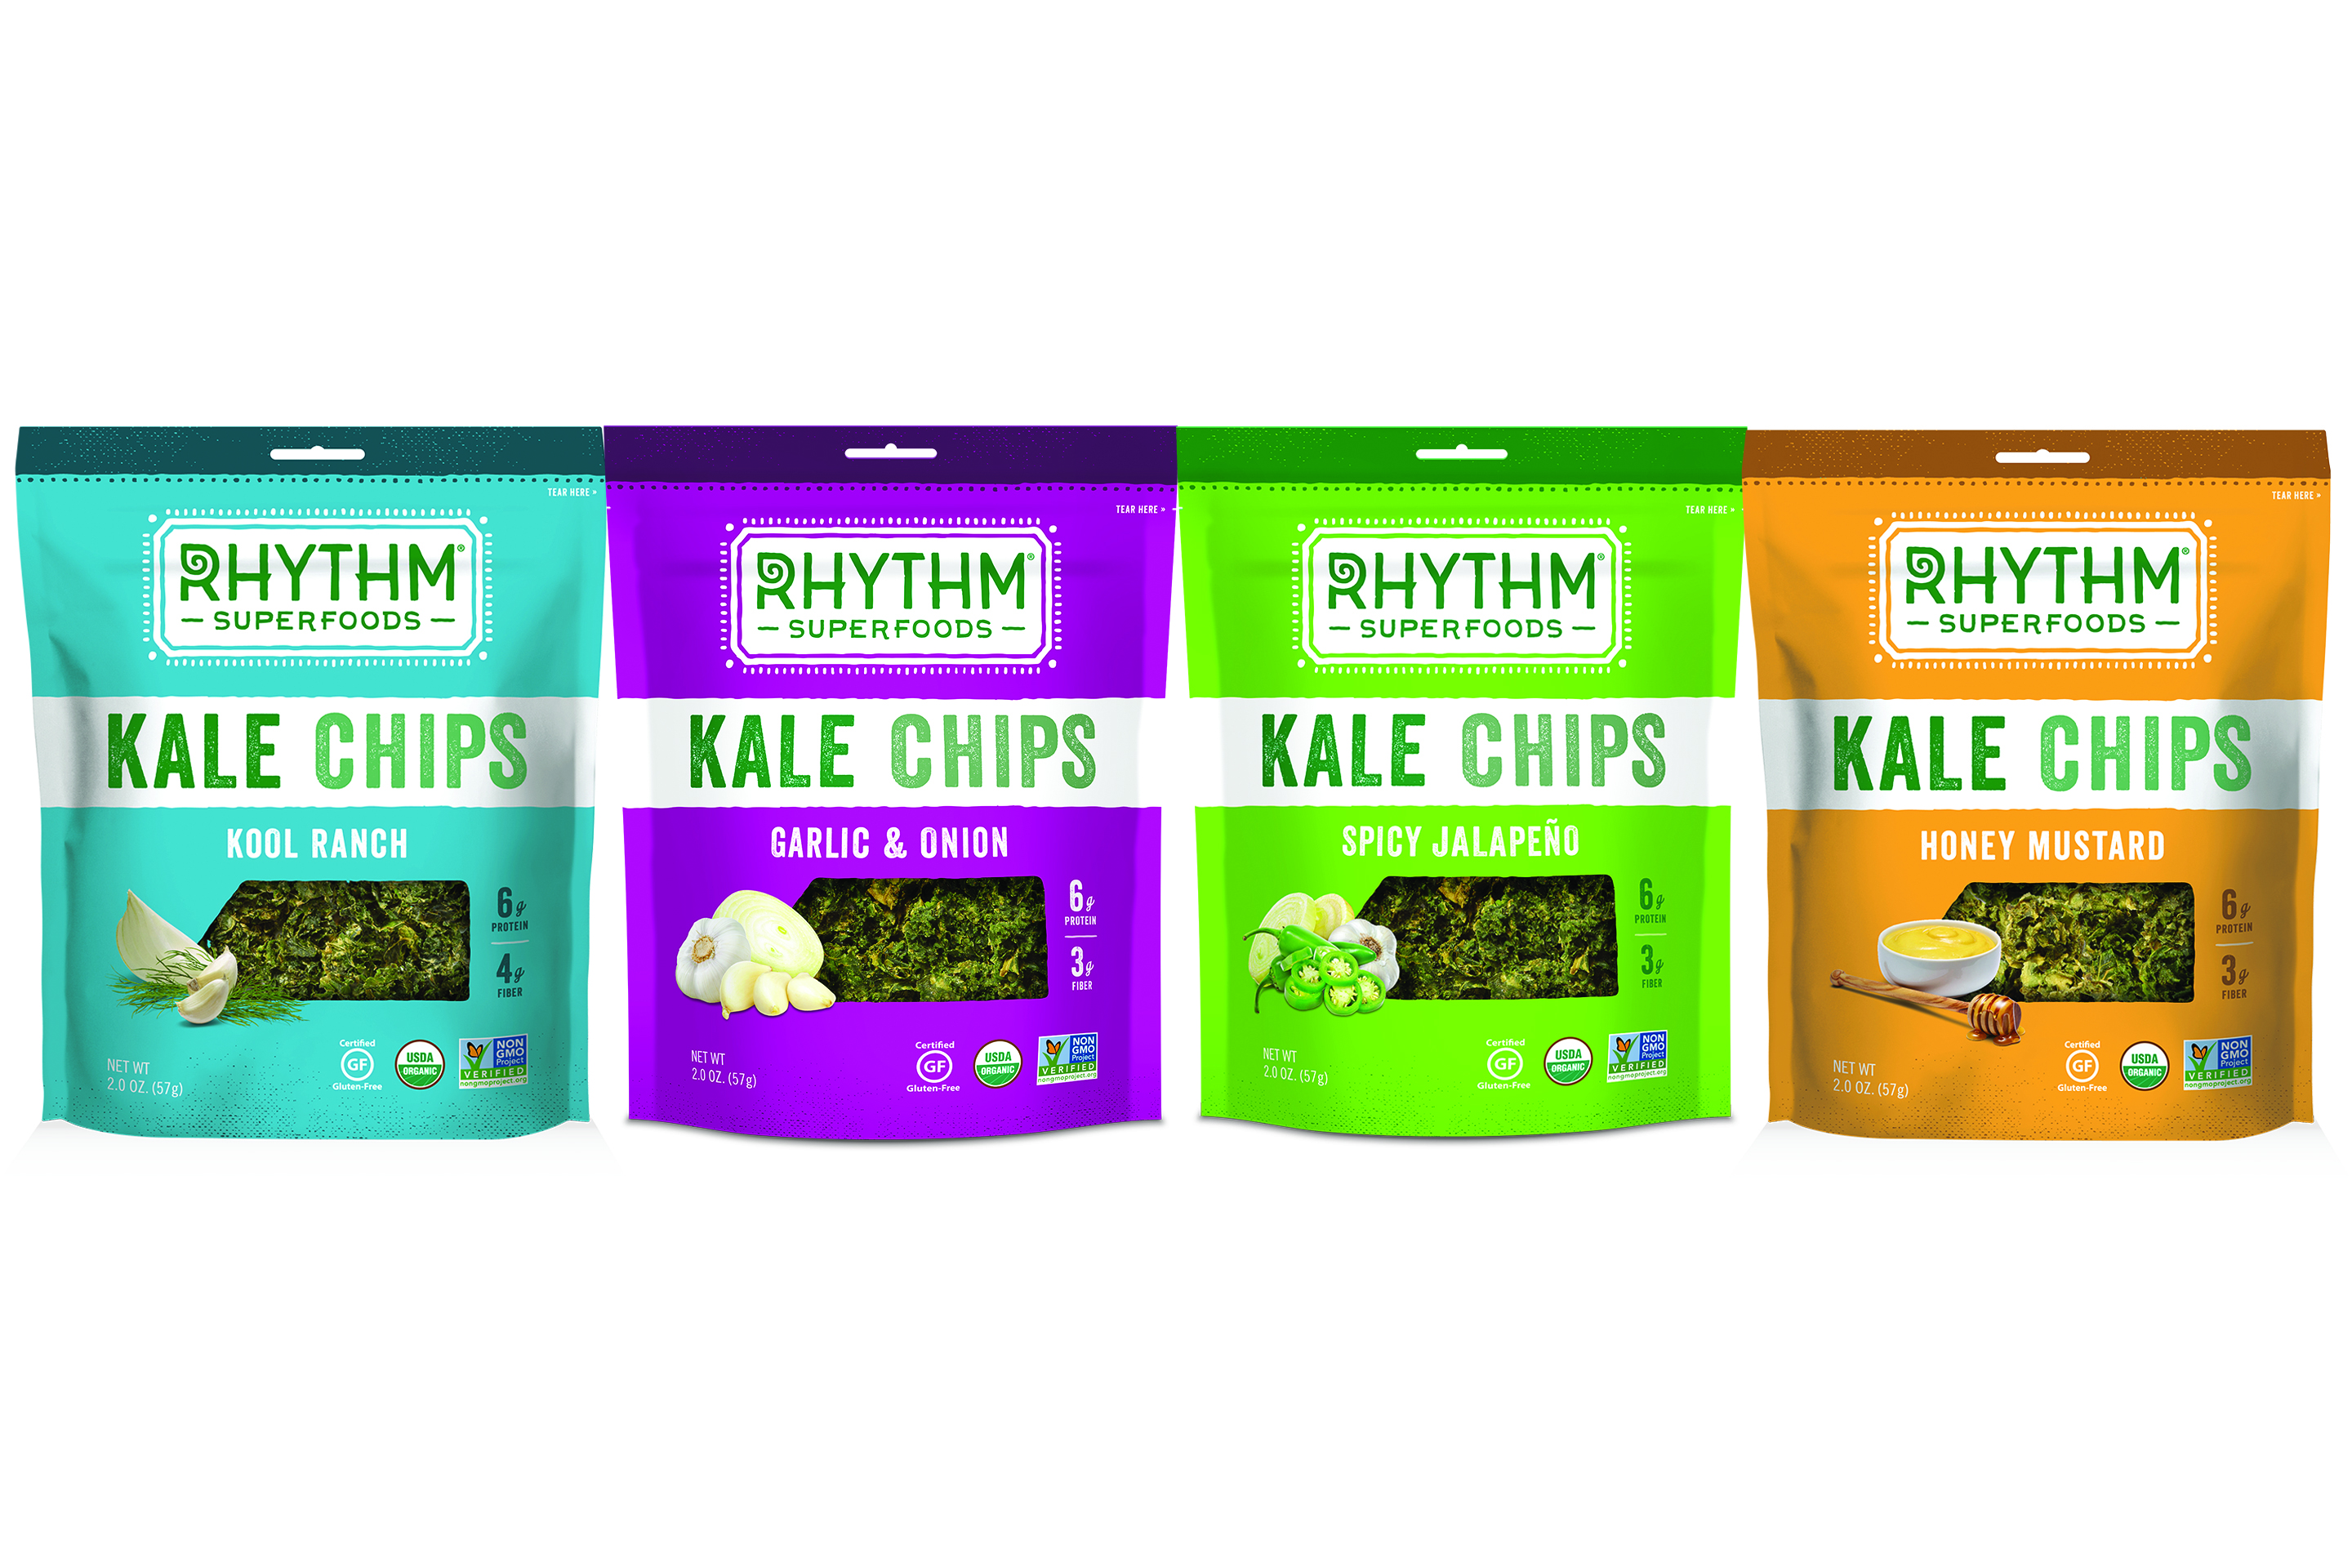 301 Inc., the venture capital arm of General Mills, has led a second investment in plant-based snack maker Rhythm Superfoods.